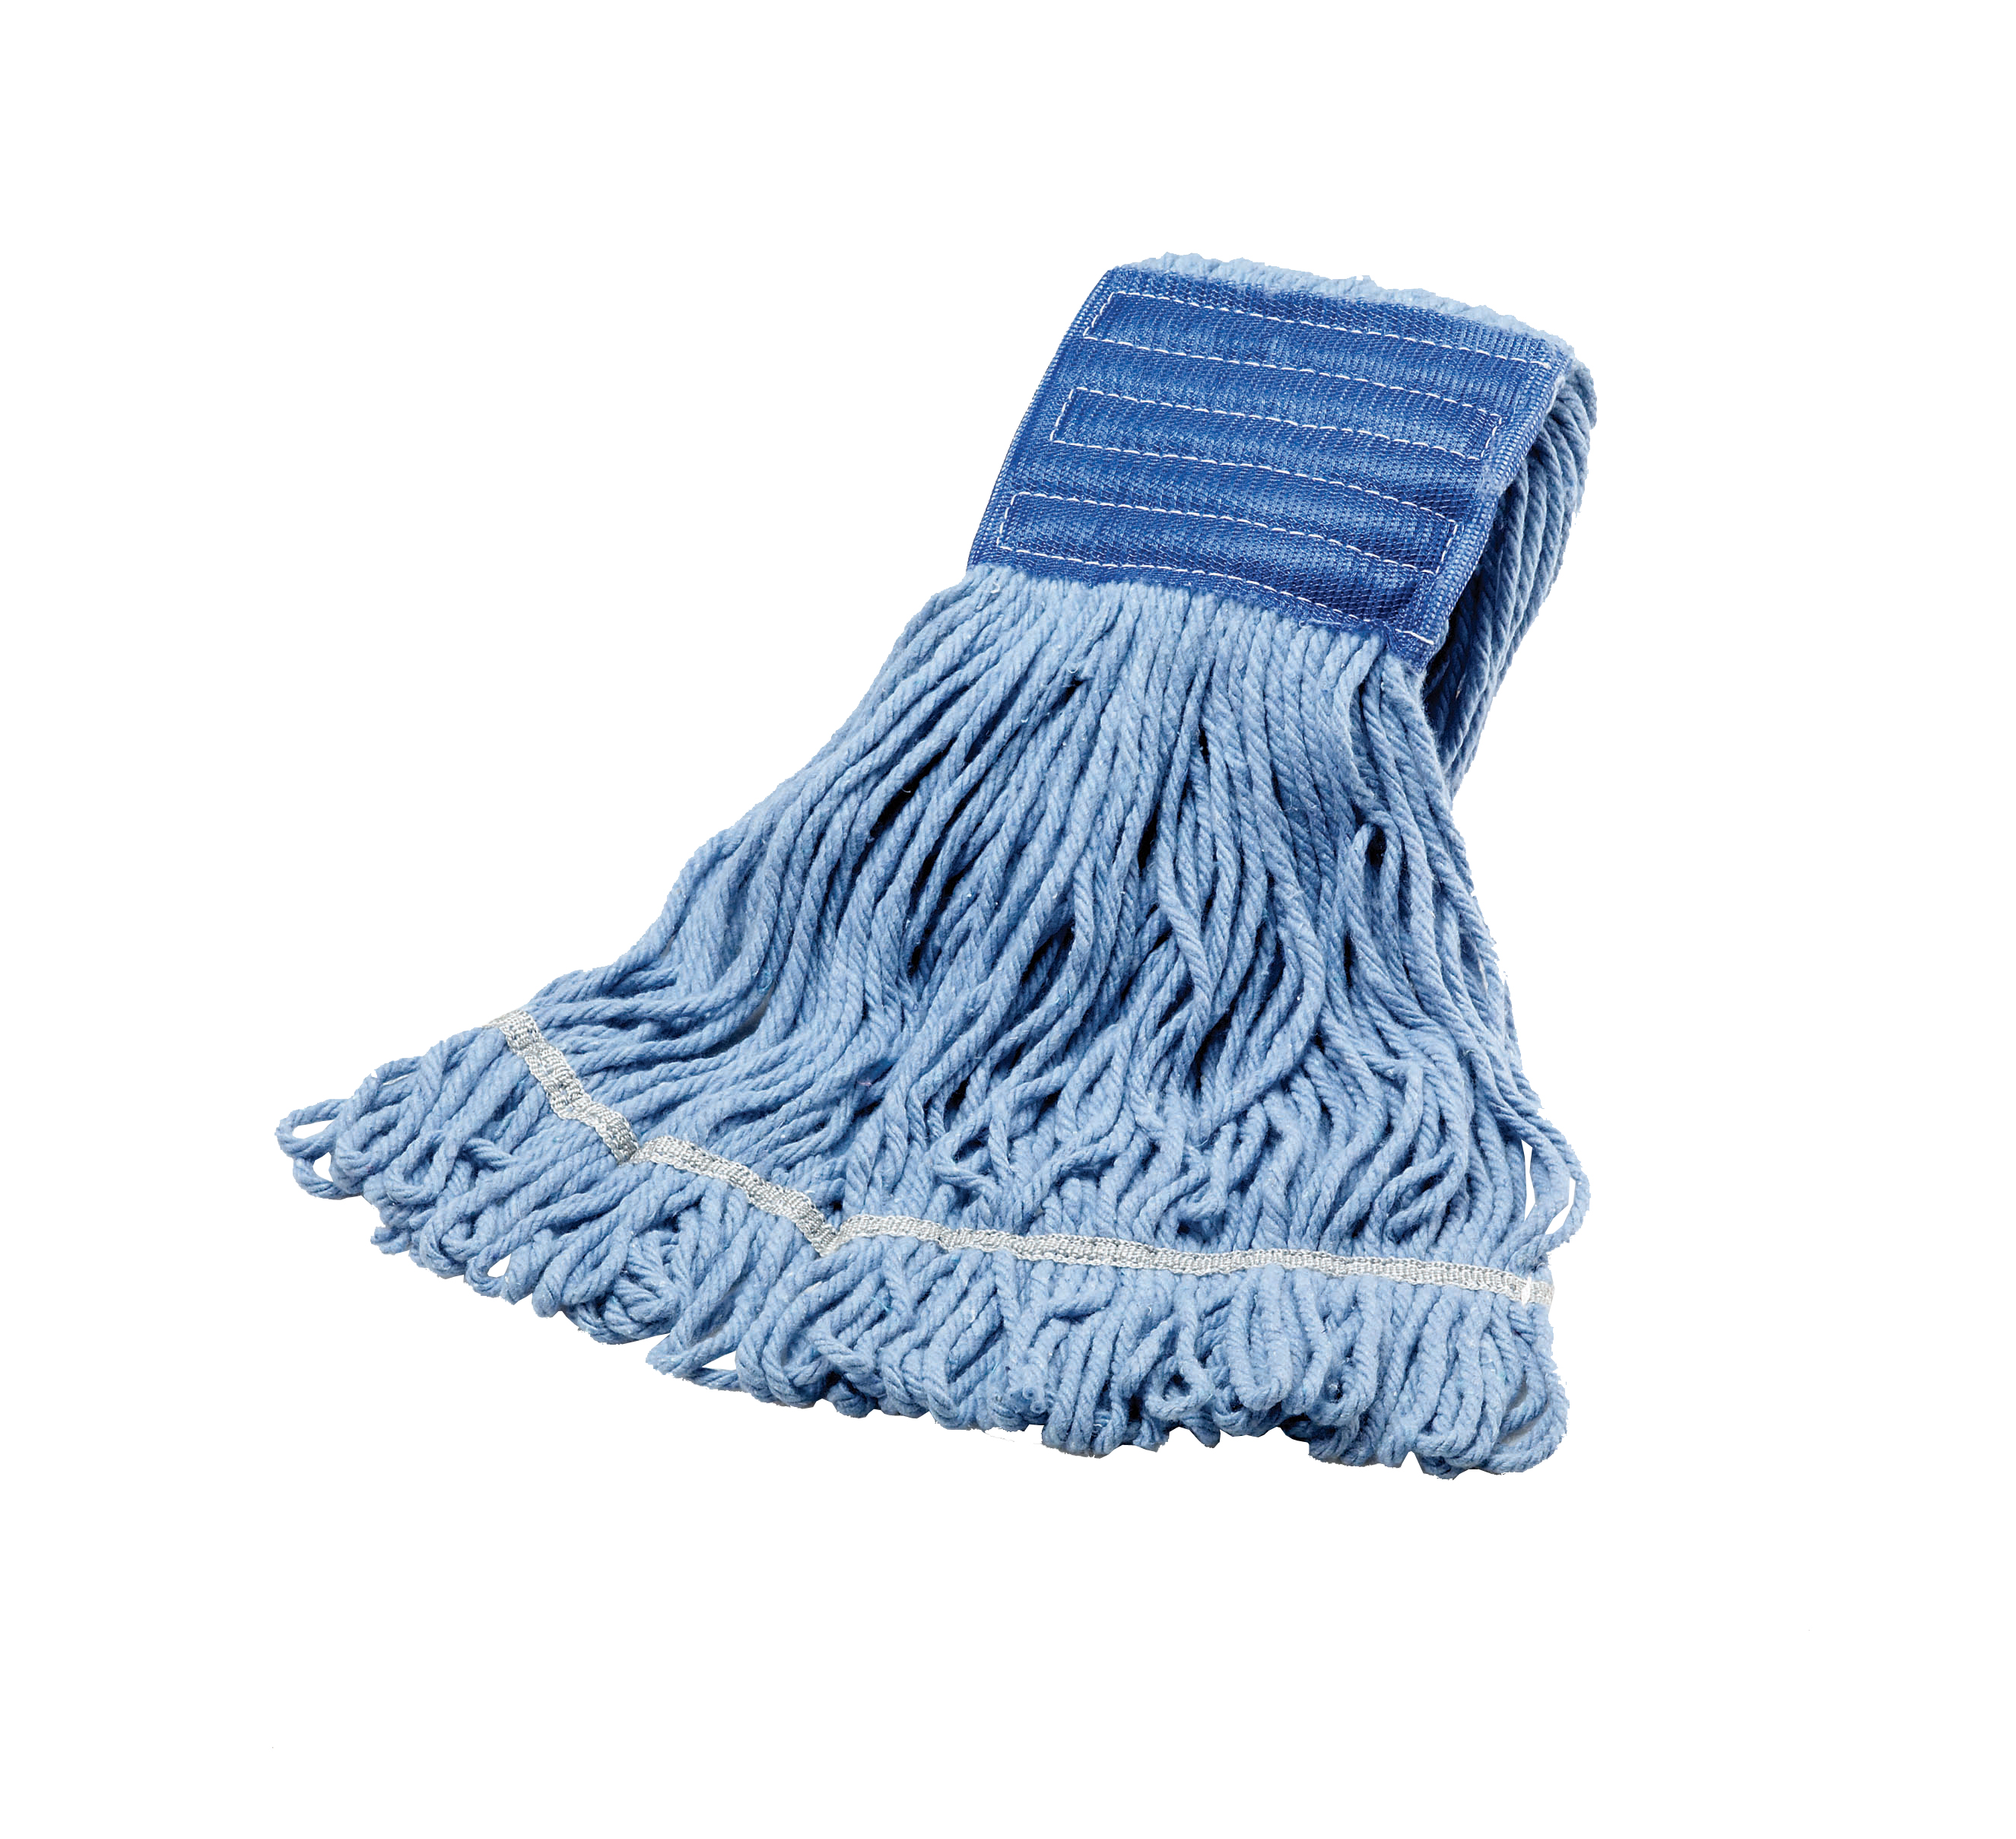 Janico Blue Medium Blended Cotton Wide Band Looped End Mop 3041